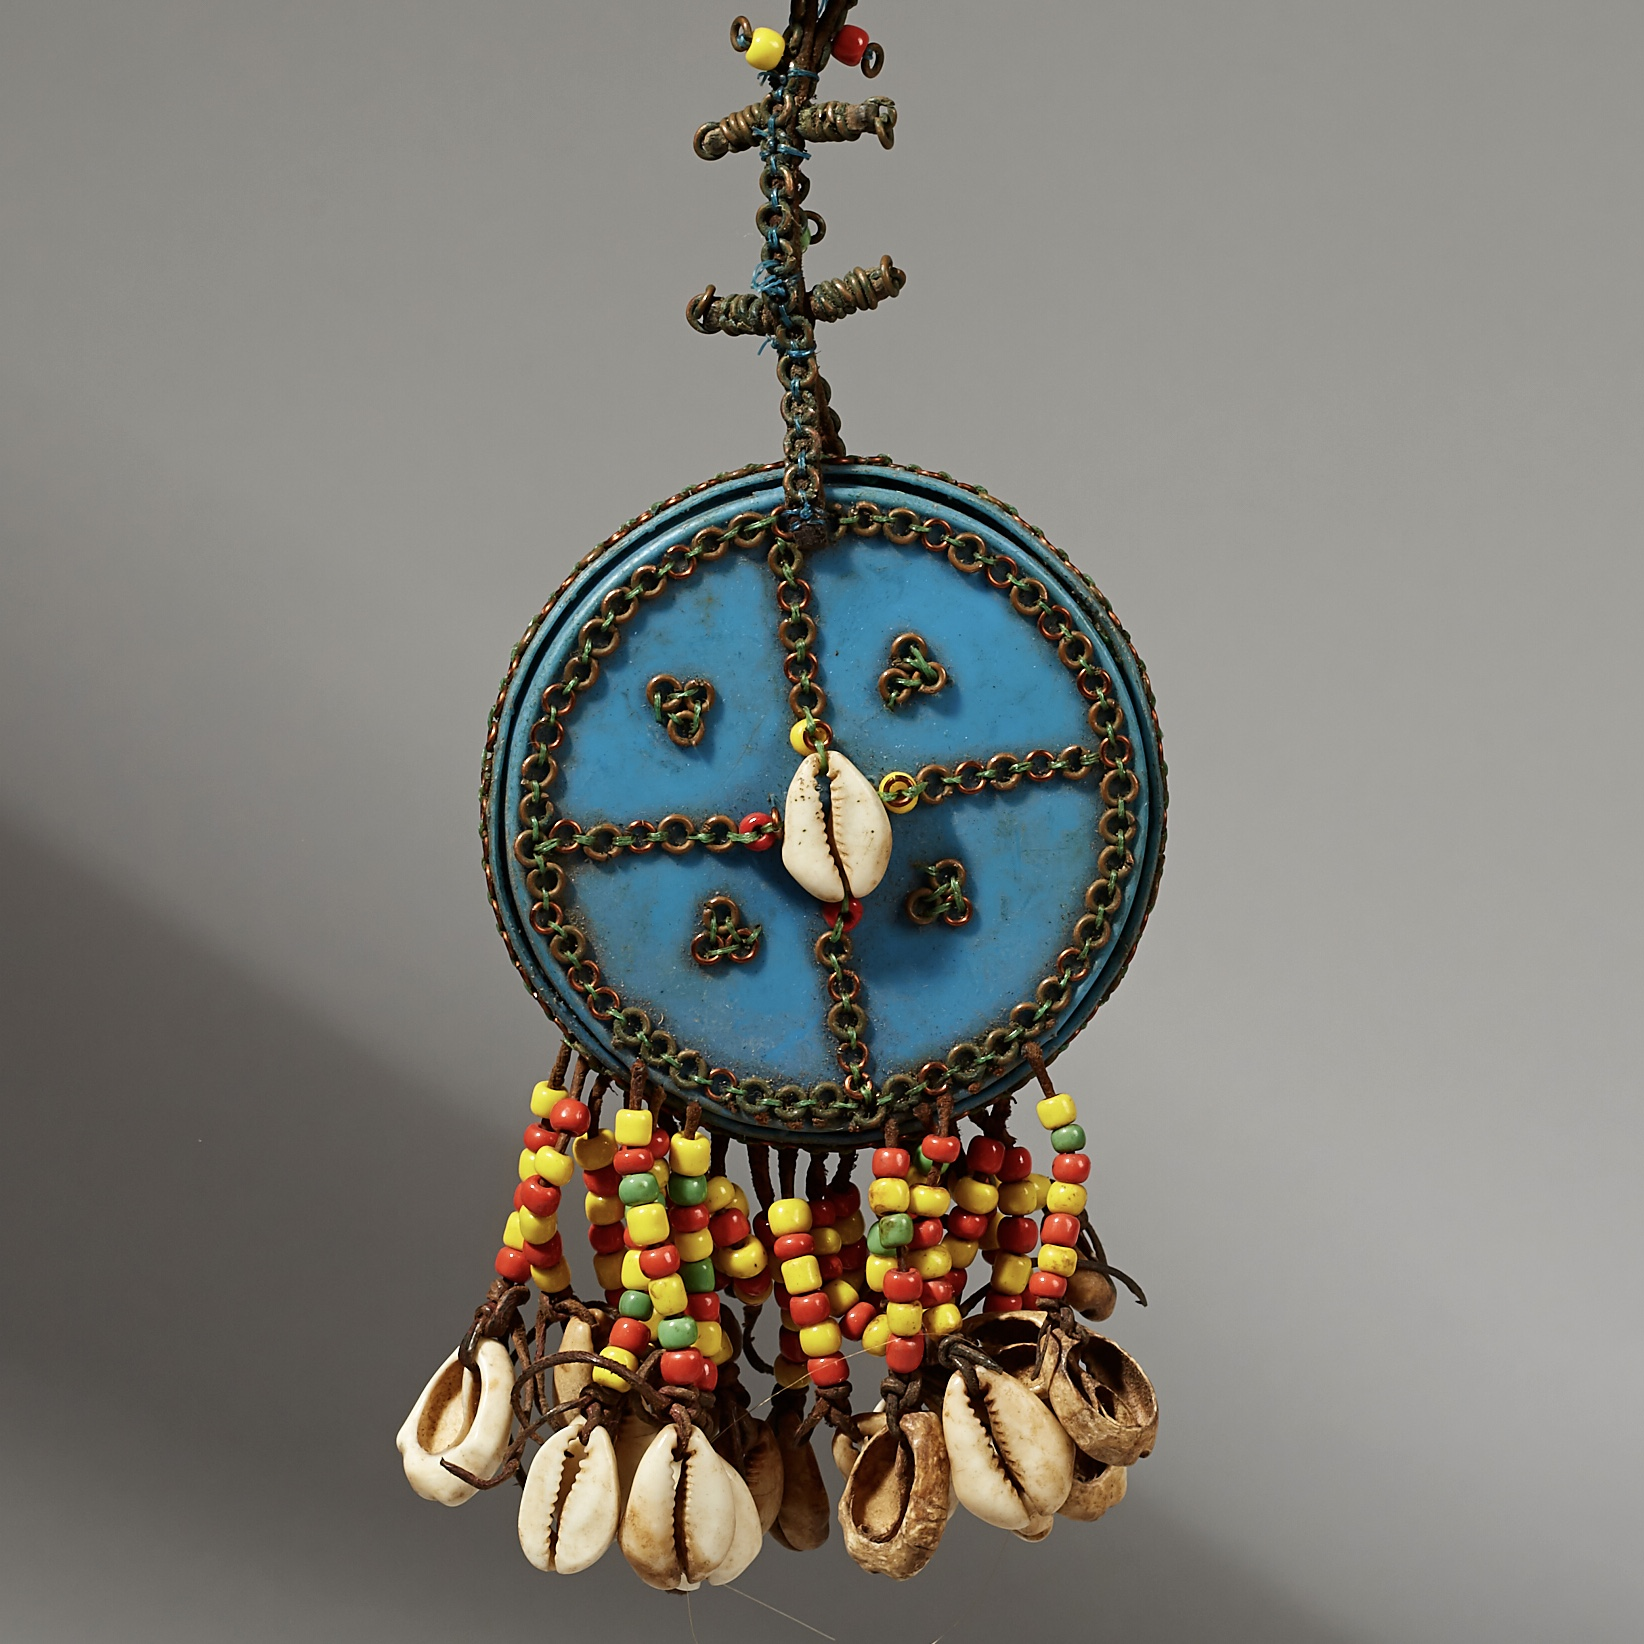 A SURPRISING WODAABE MIRROR PENDANT FROM NIGER W AFRICA ( No 4150)